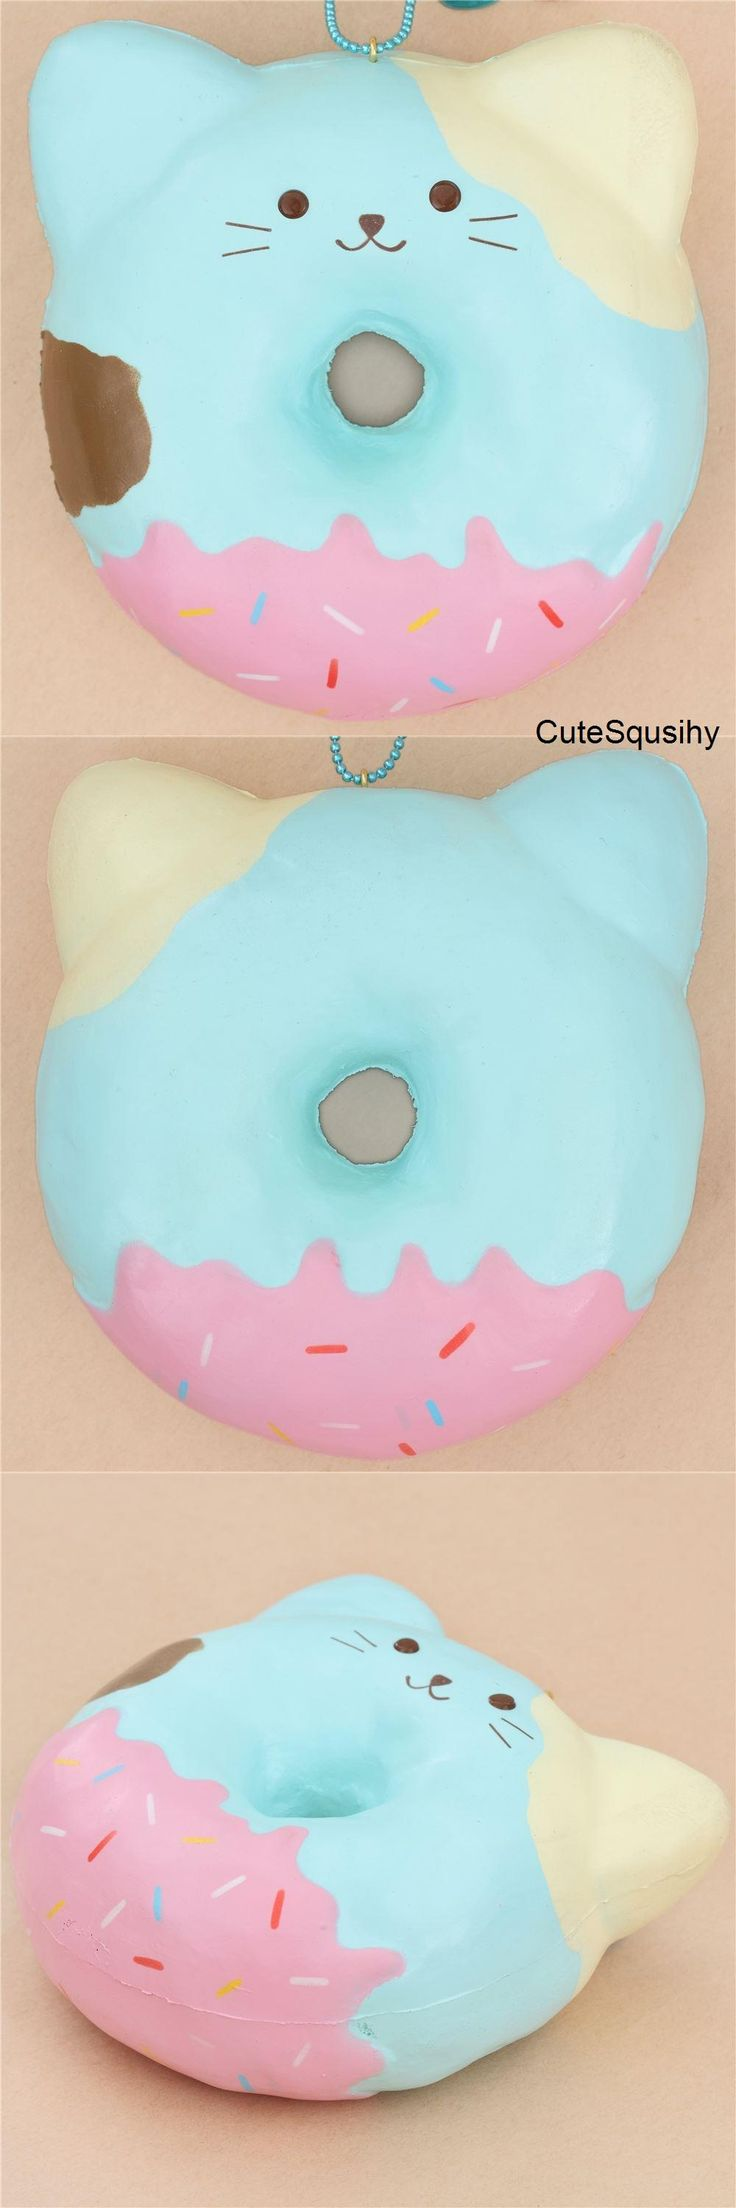 May Kawaii Squishy And Slime : 374 best Slime lol dolls and squishy images on Pinterest Squishies, Slime and Kawaii stuff